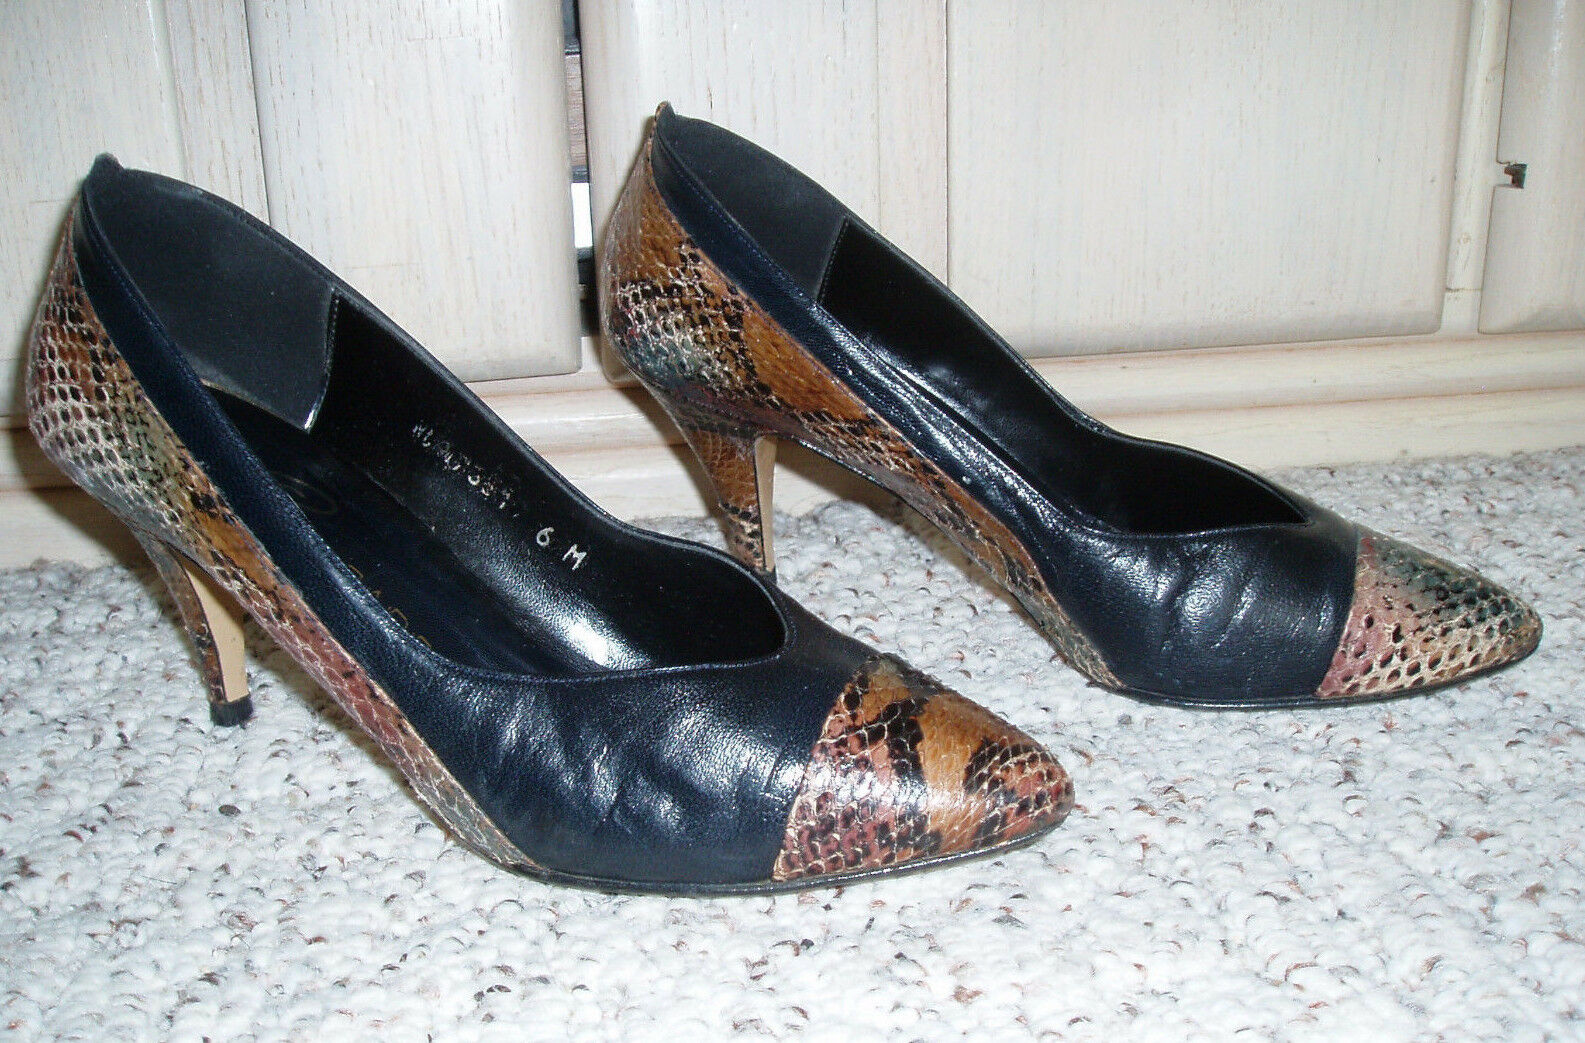 CHARADE Spain Snake Pattern Leather High 6 Heel Dress Pumps~ Browns~Size 6 High M 6bf976